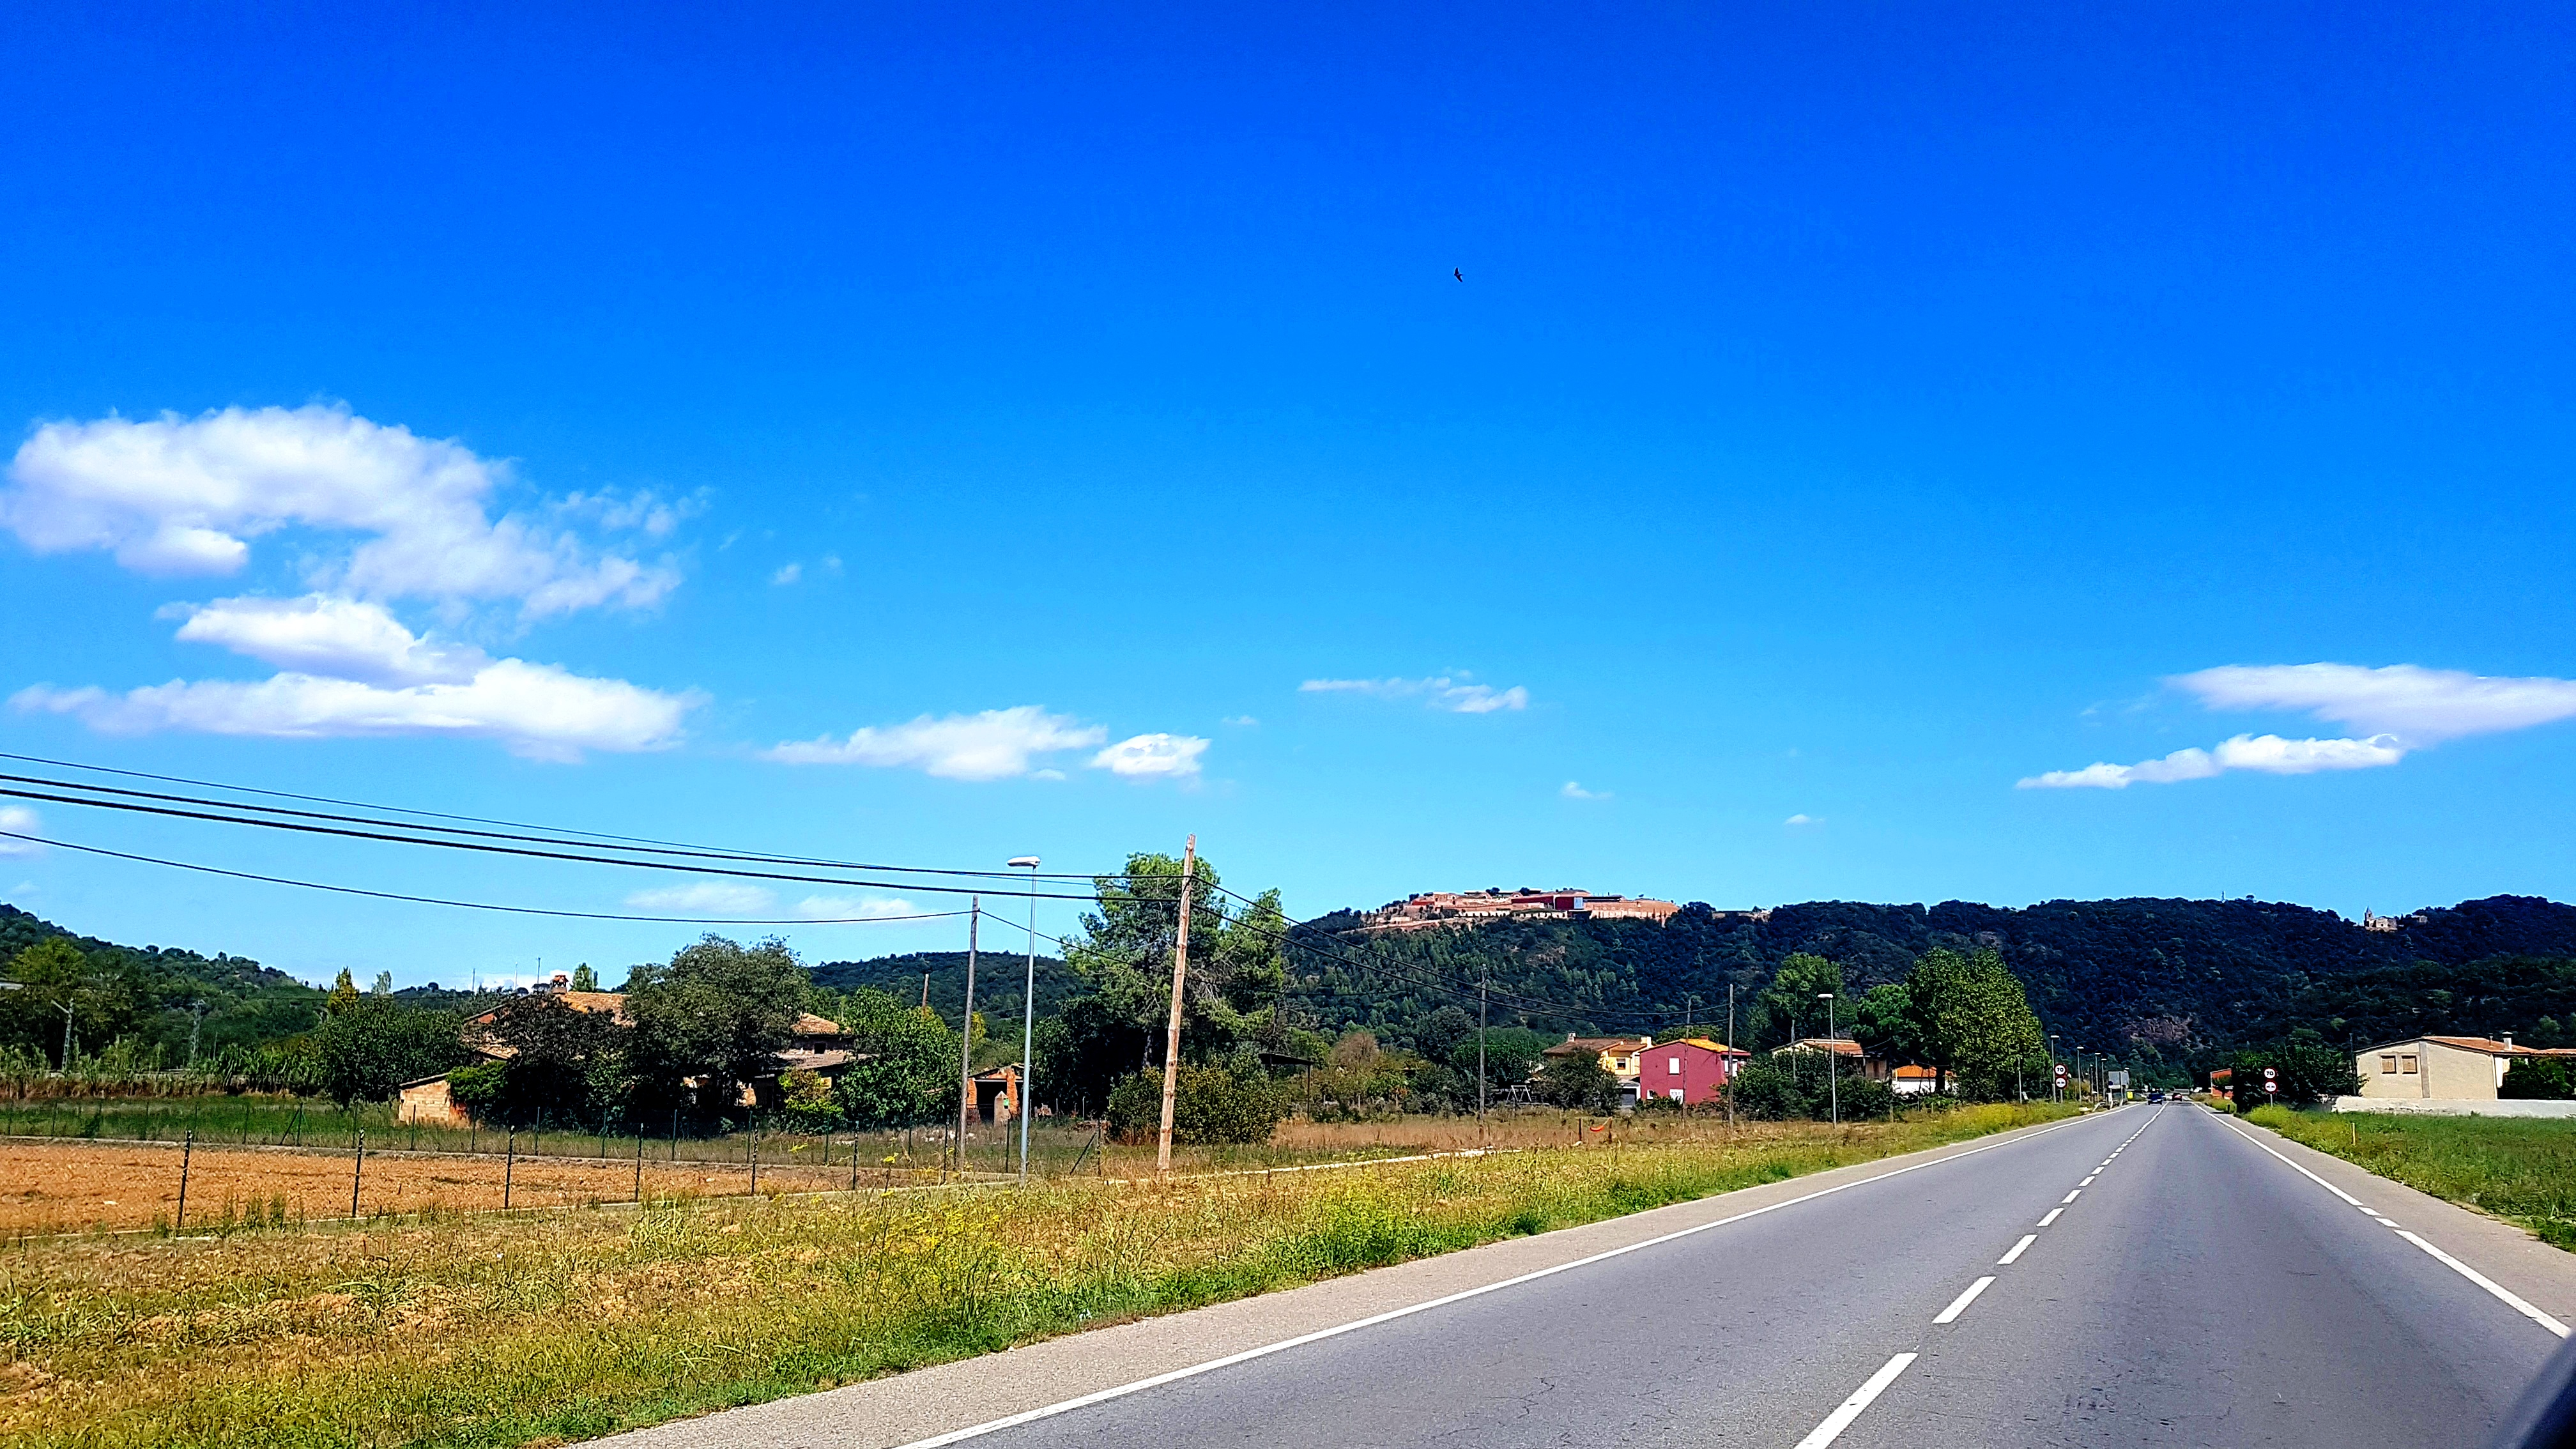 The road to Girona - Driving across Spain - South West Reviews